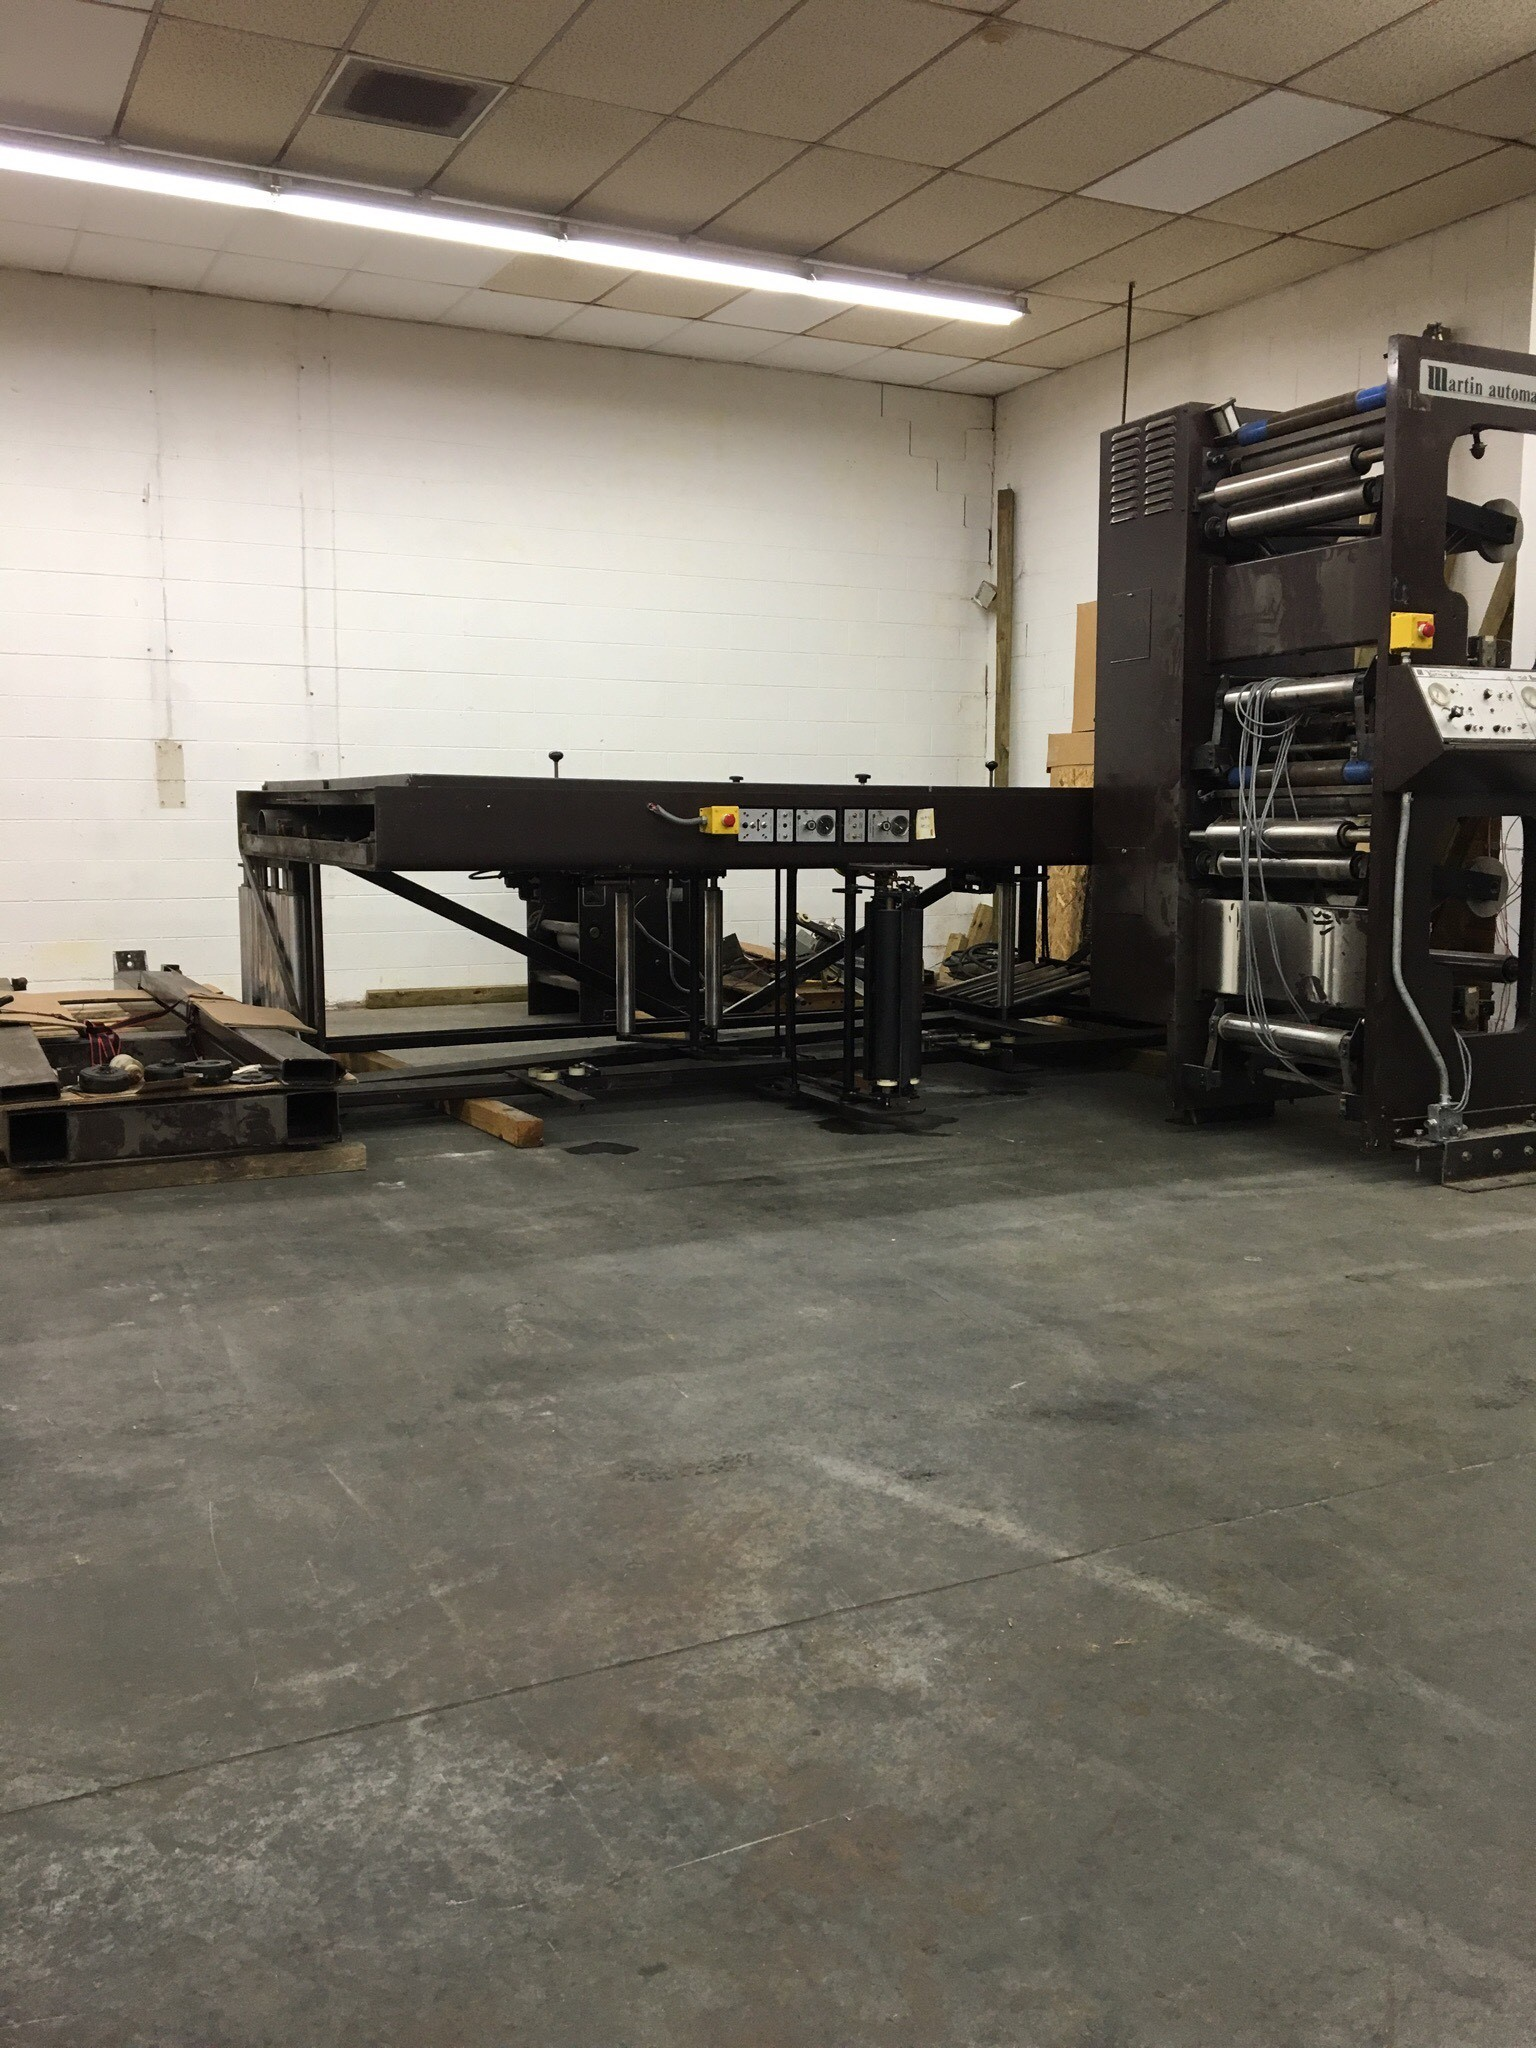 Martin EC Butt Splicer - Used Flexo Printing Presses and Used Flexographic Equipment-3